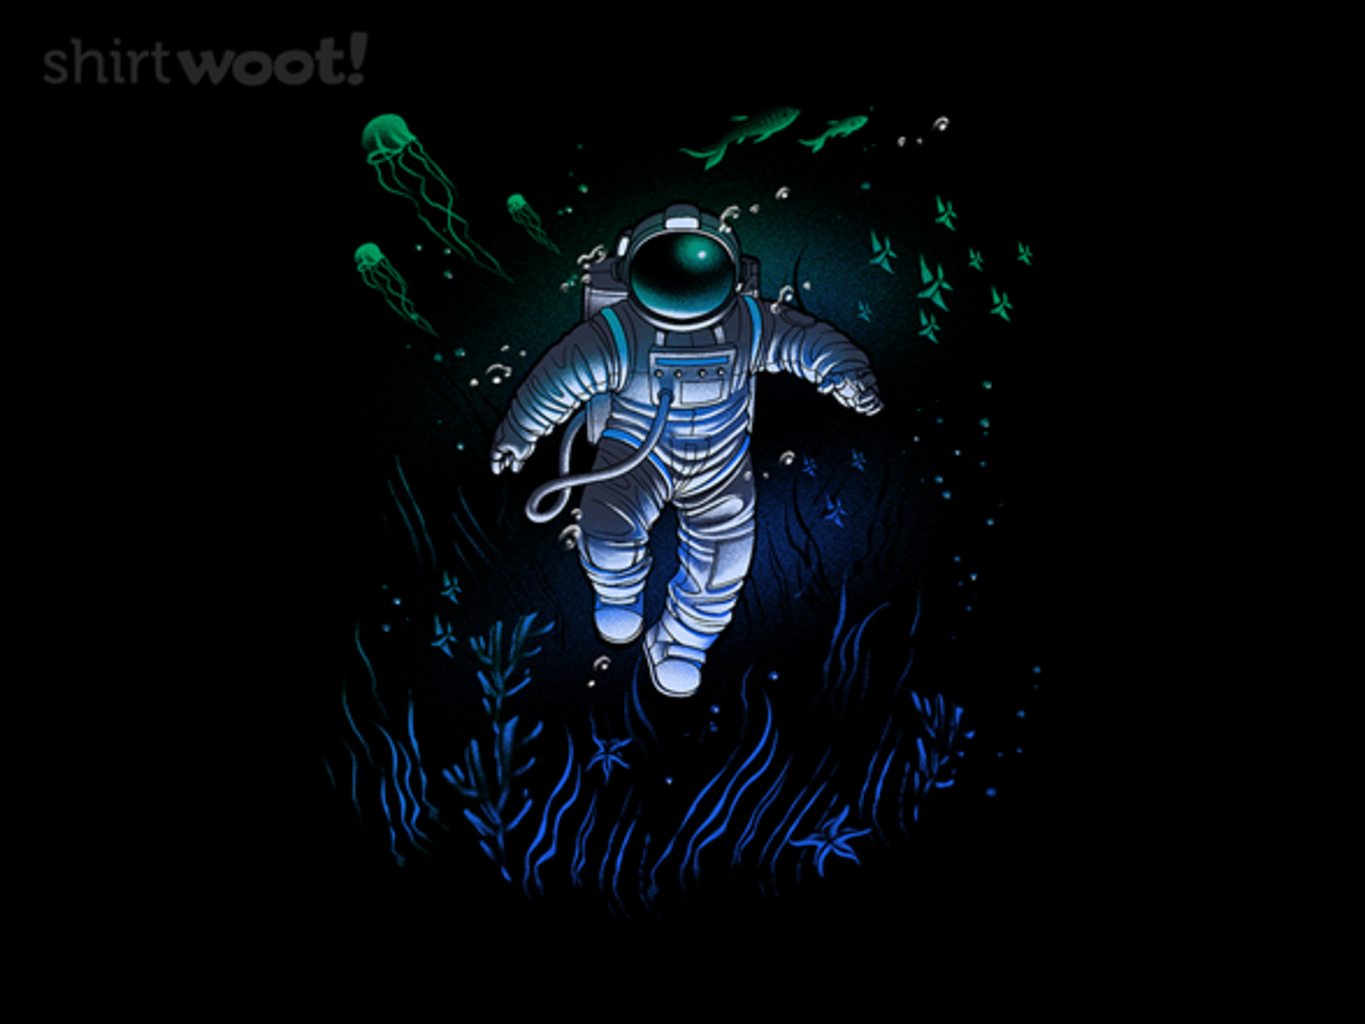 Woot!: Under The Sky - $15.00 + Free shipping